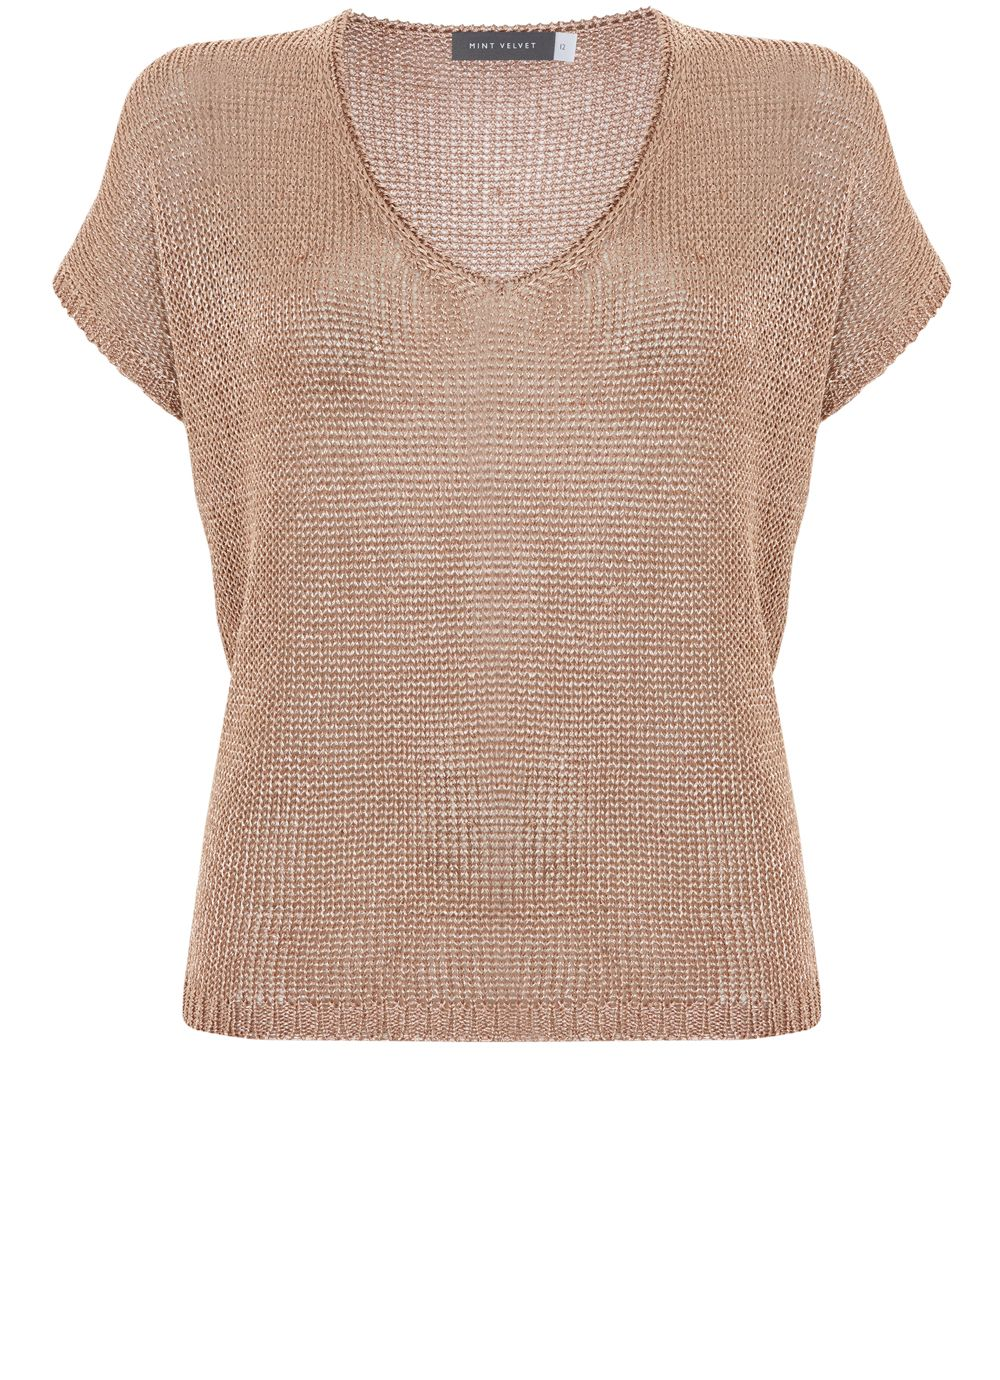 Mint Velvet Rose Gold Tape Yarn Tee, Silverlic